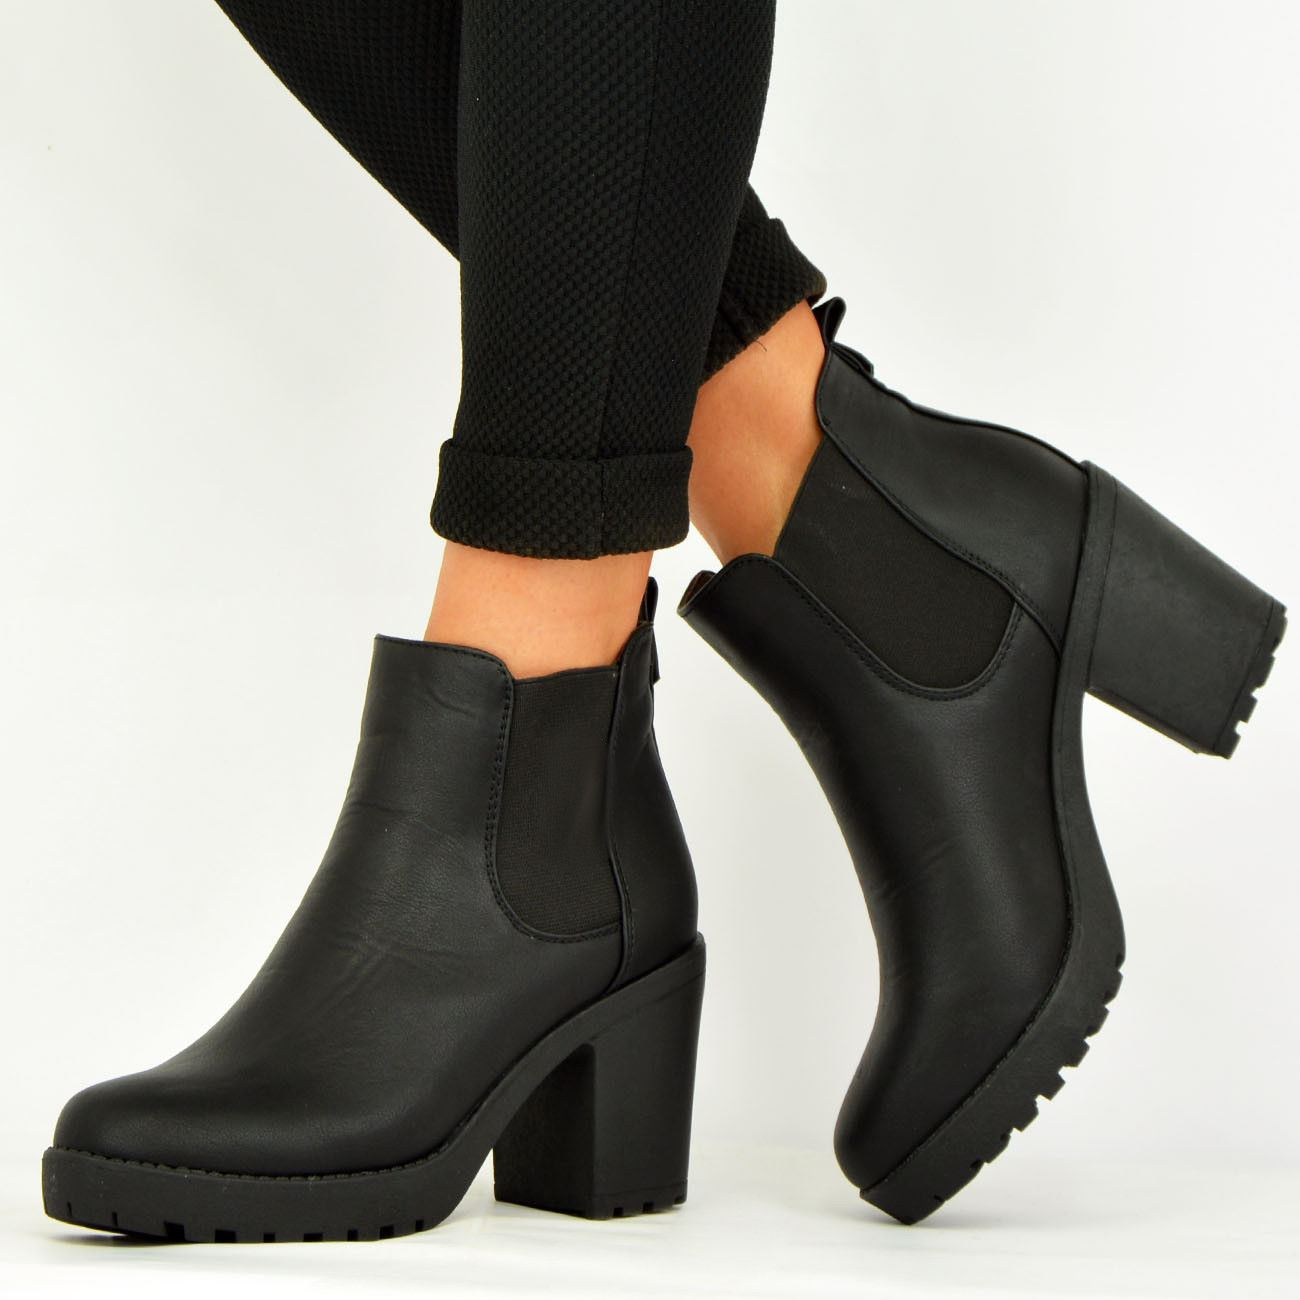 LADIES-WOMENS-ANKLE-CHELSEA-BOOTS-CHUNKY-BLOCK-HEELS-PLATFORM-SHOES-SIZE-UK-3-8